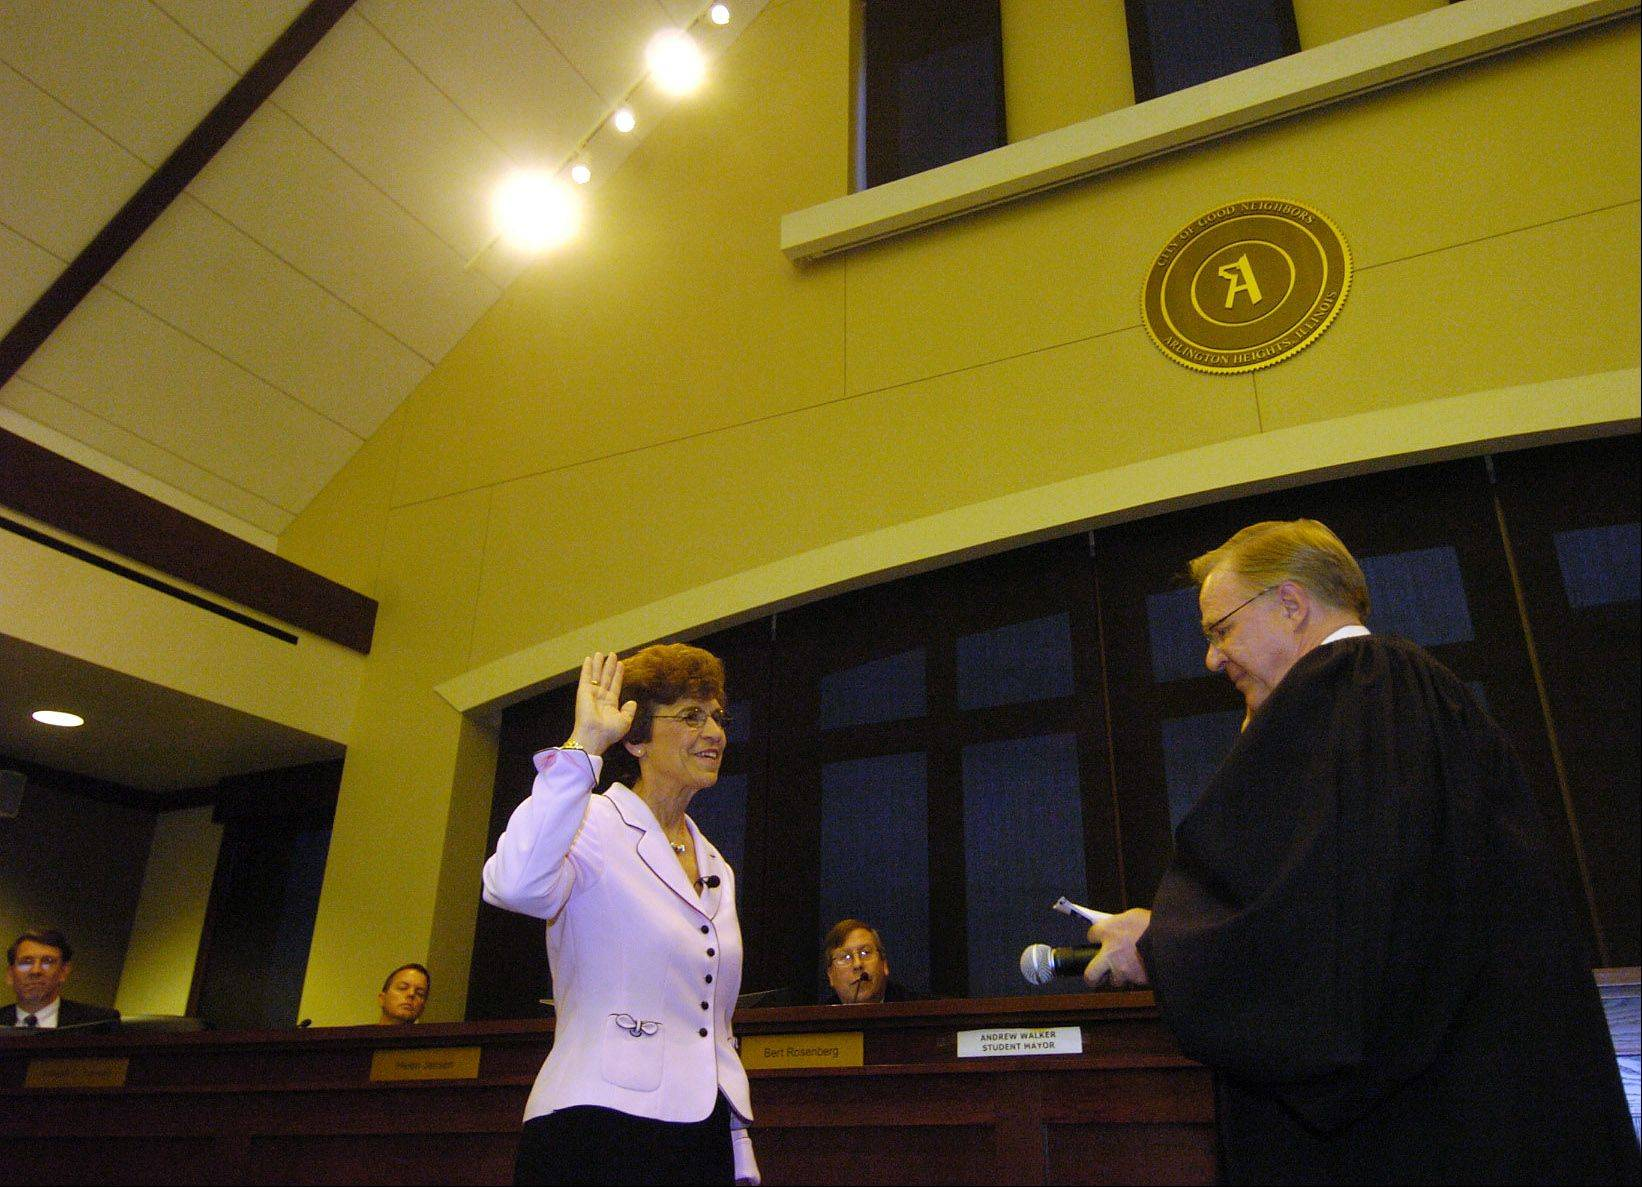 Judge William Maki swears the mayor into office for the final time, on May 4, 2009.